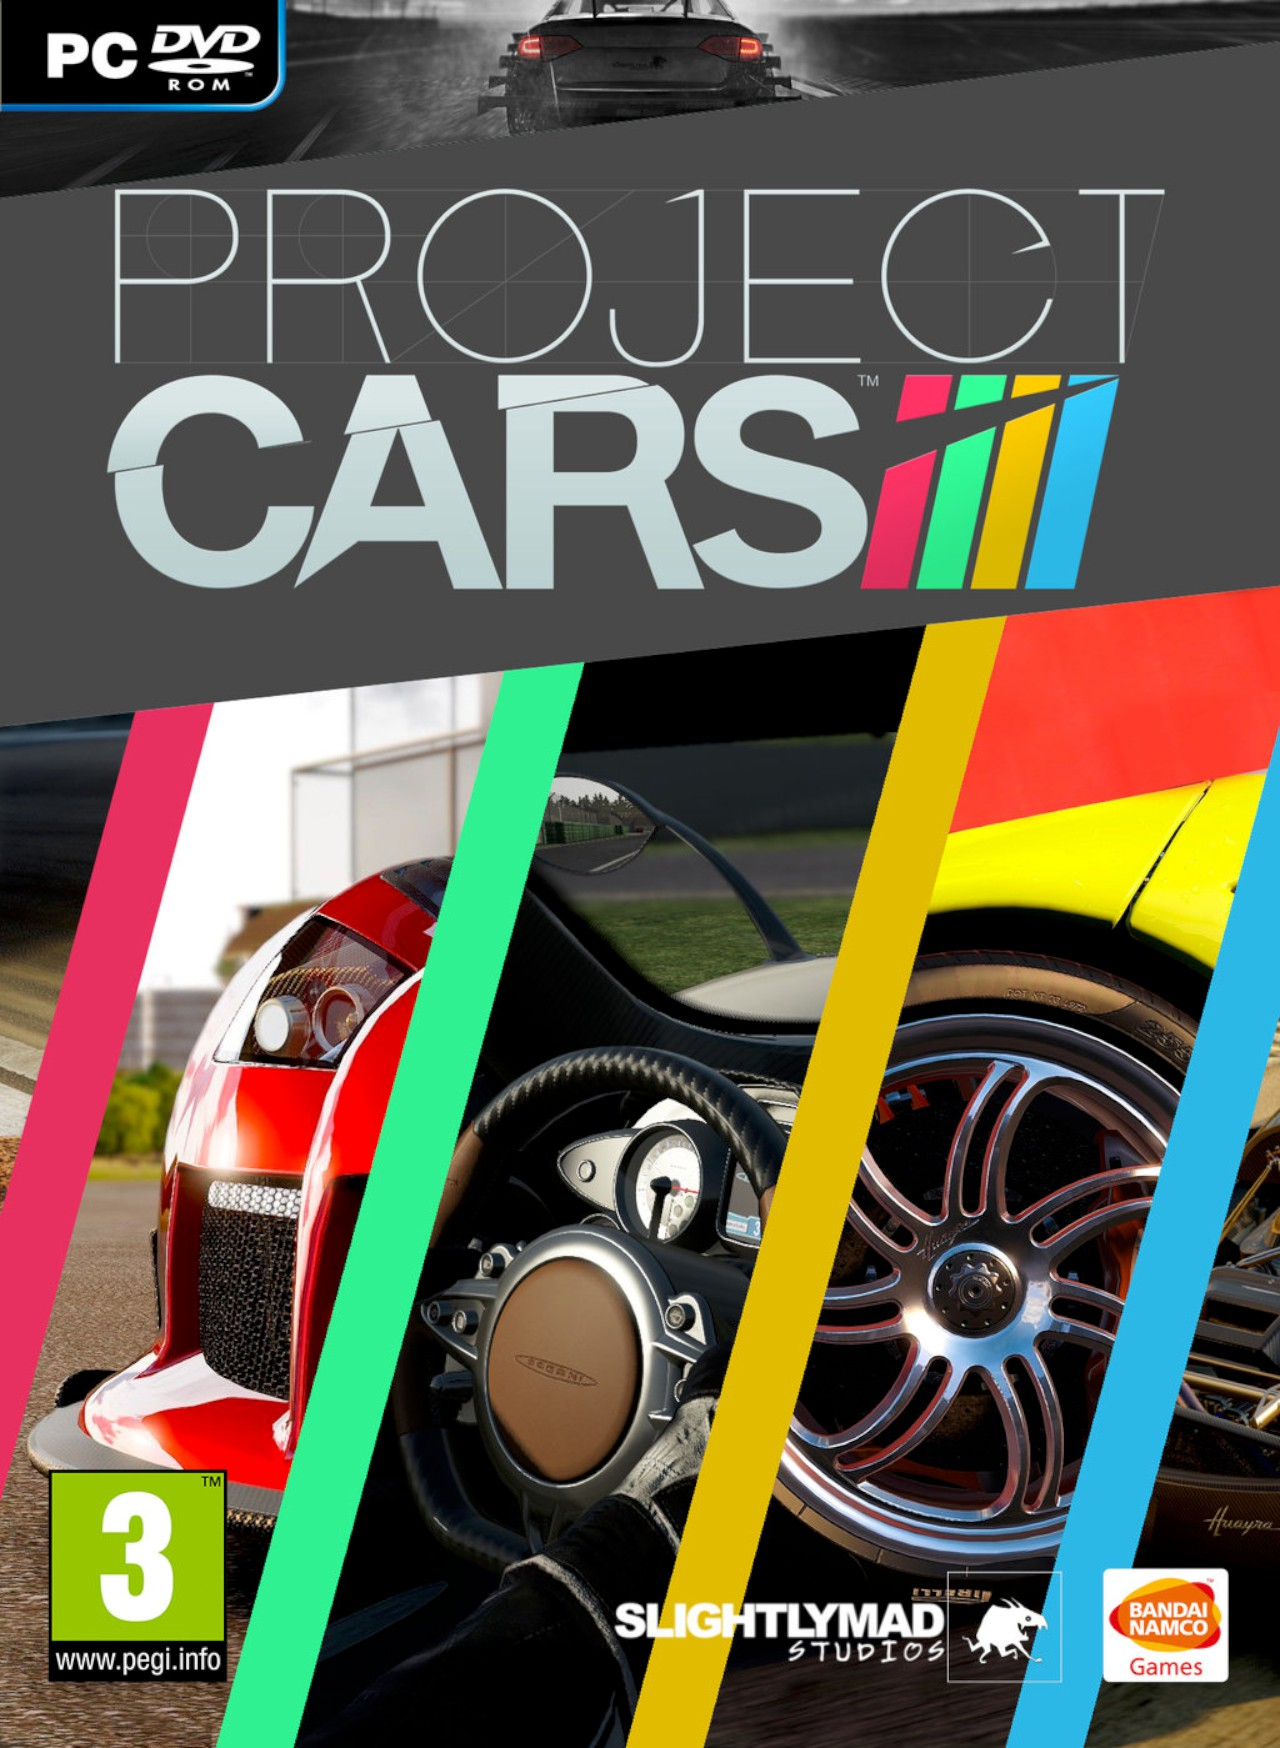 PROJECT CARS (STEAM KEY) RU VERSION